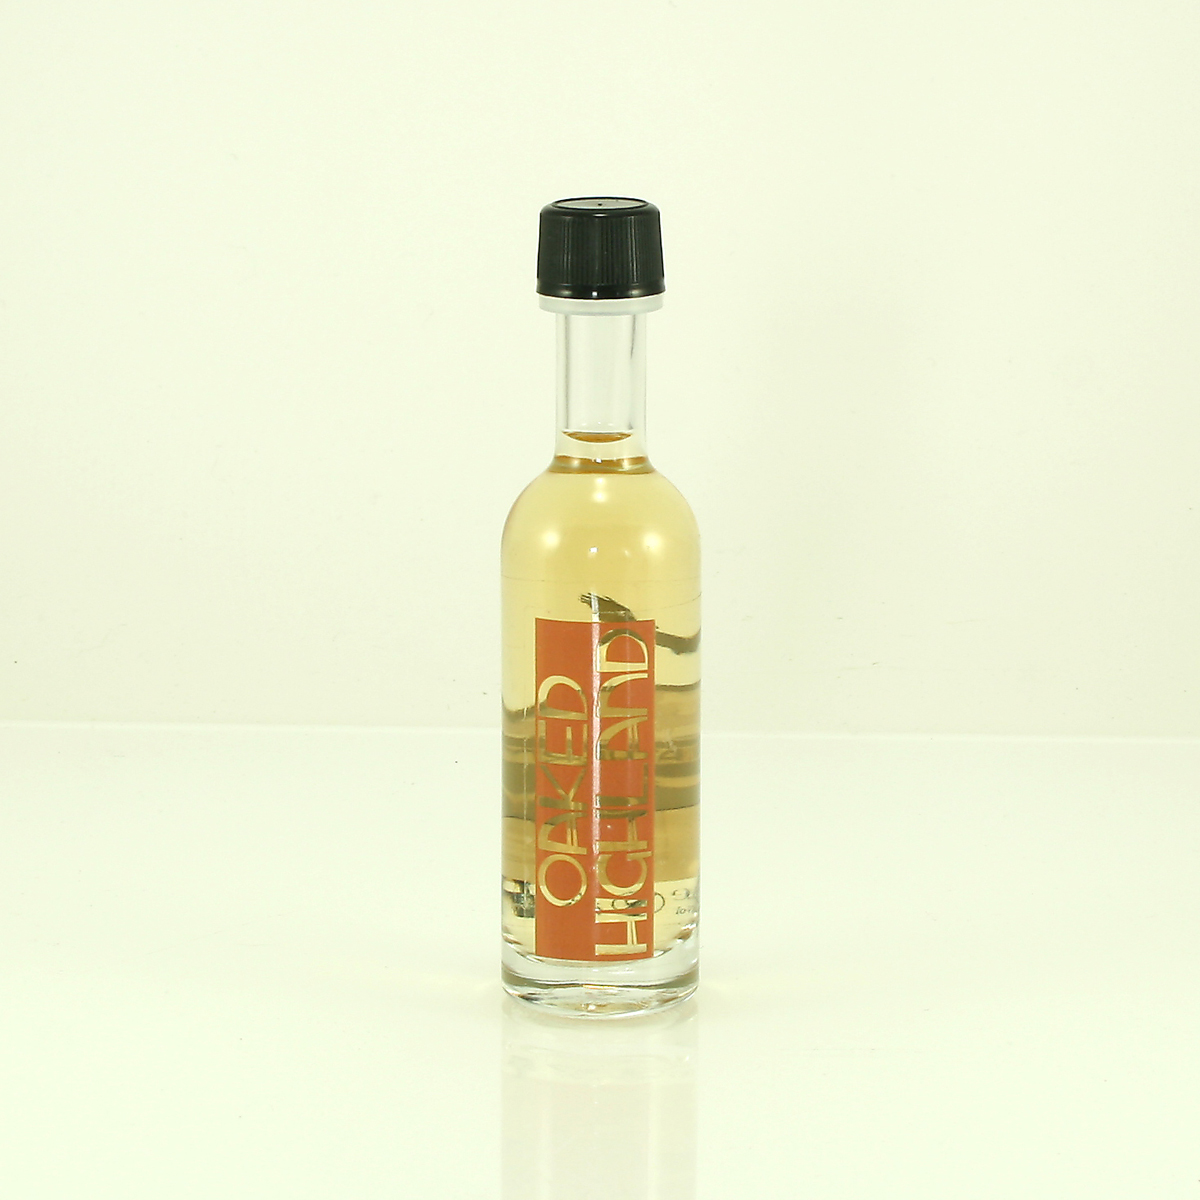 STRATHEARN Oaked Scottish Gin 5cl